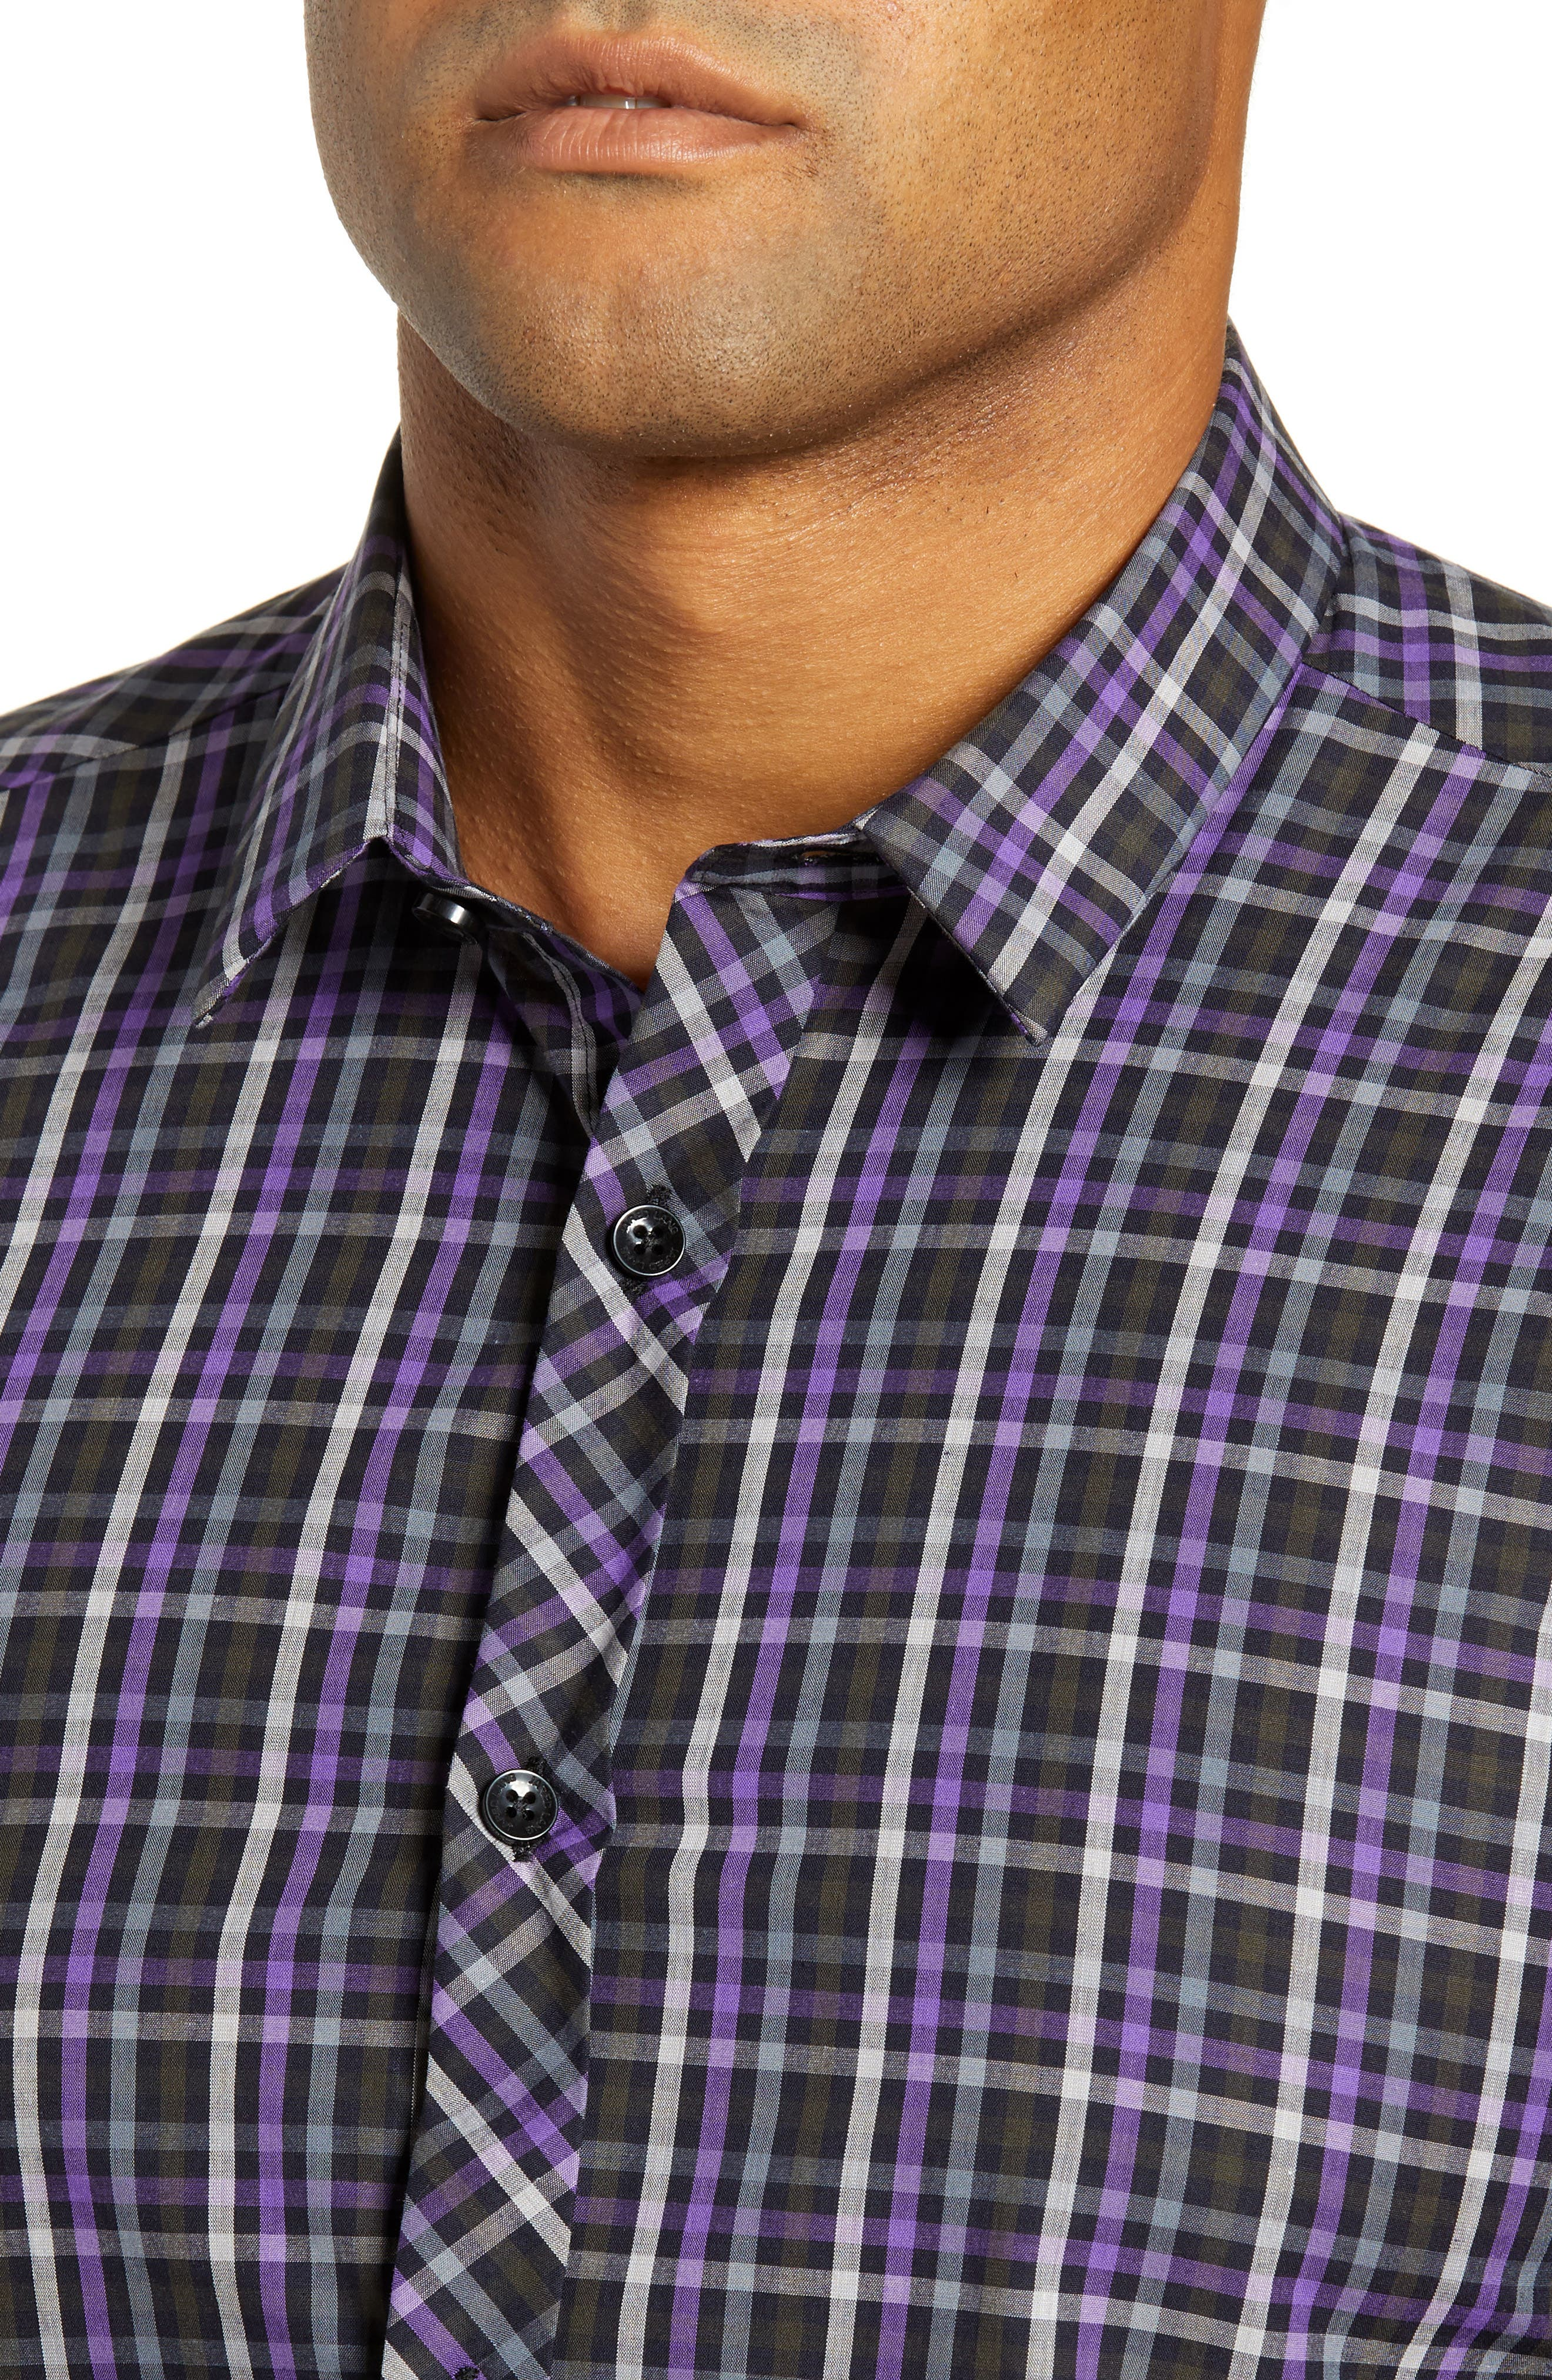 Trim Fit Sport Shirt,                             Alternate thumbnail 2, color,                             PURPLE - BLACK MULTI CHECK